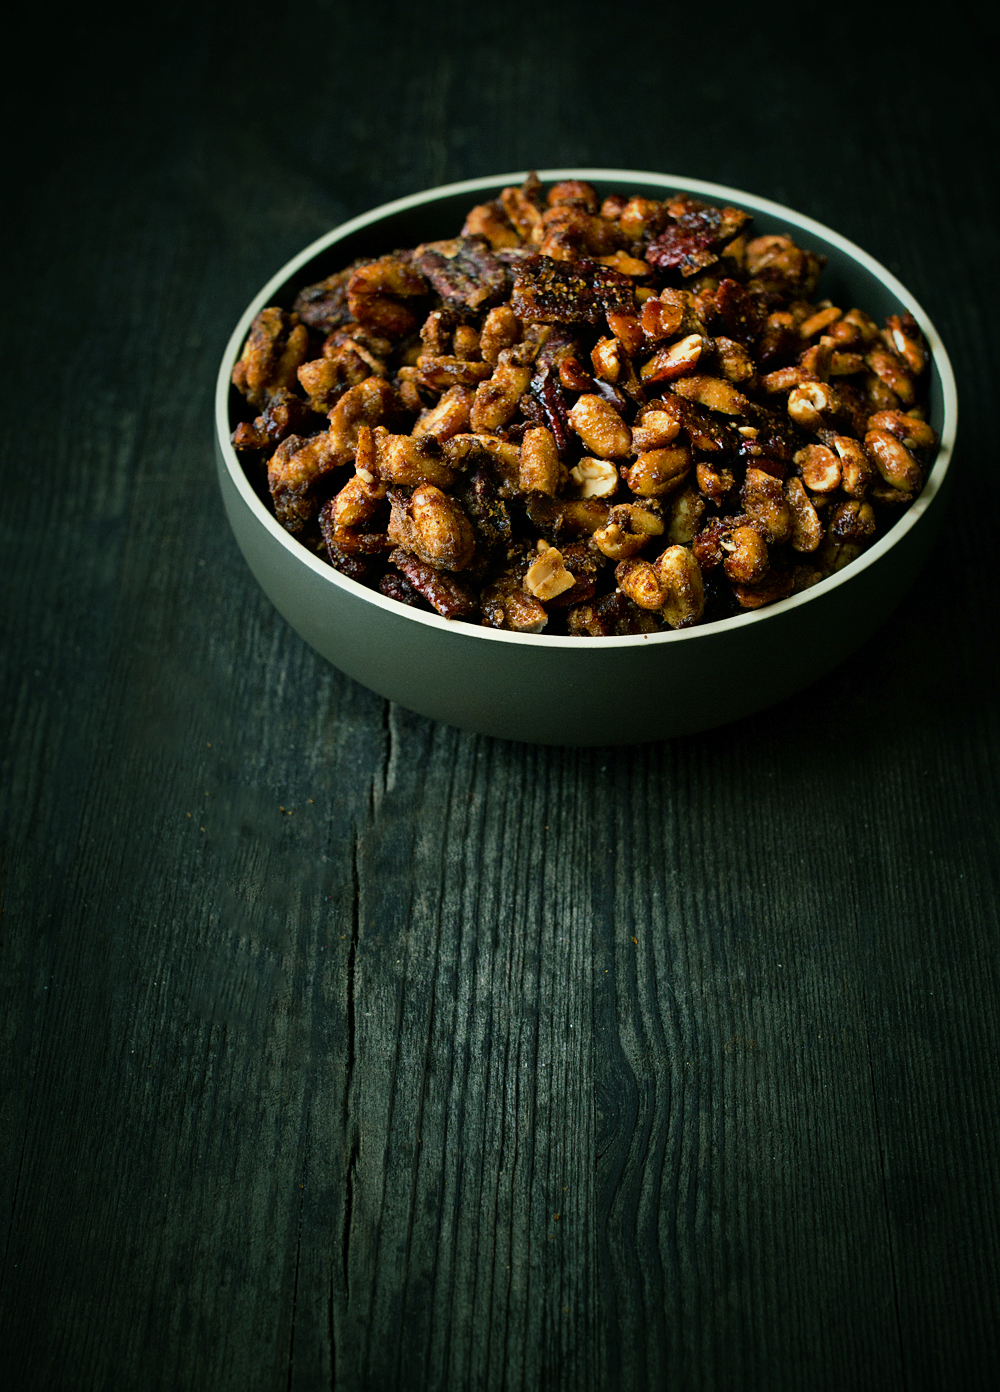 Spicy Candied Nuts